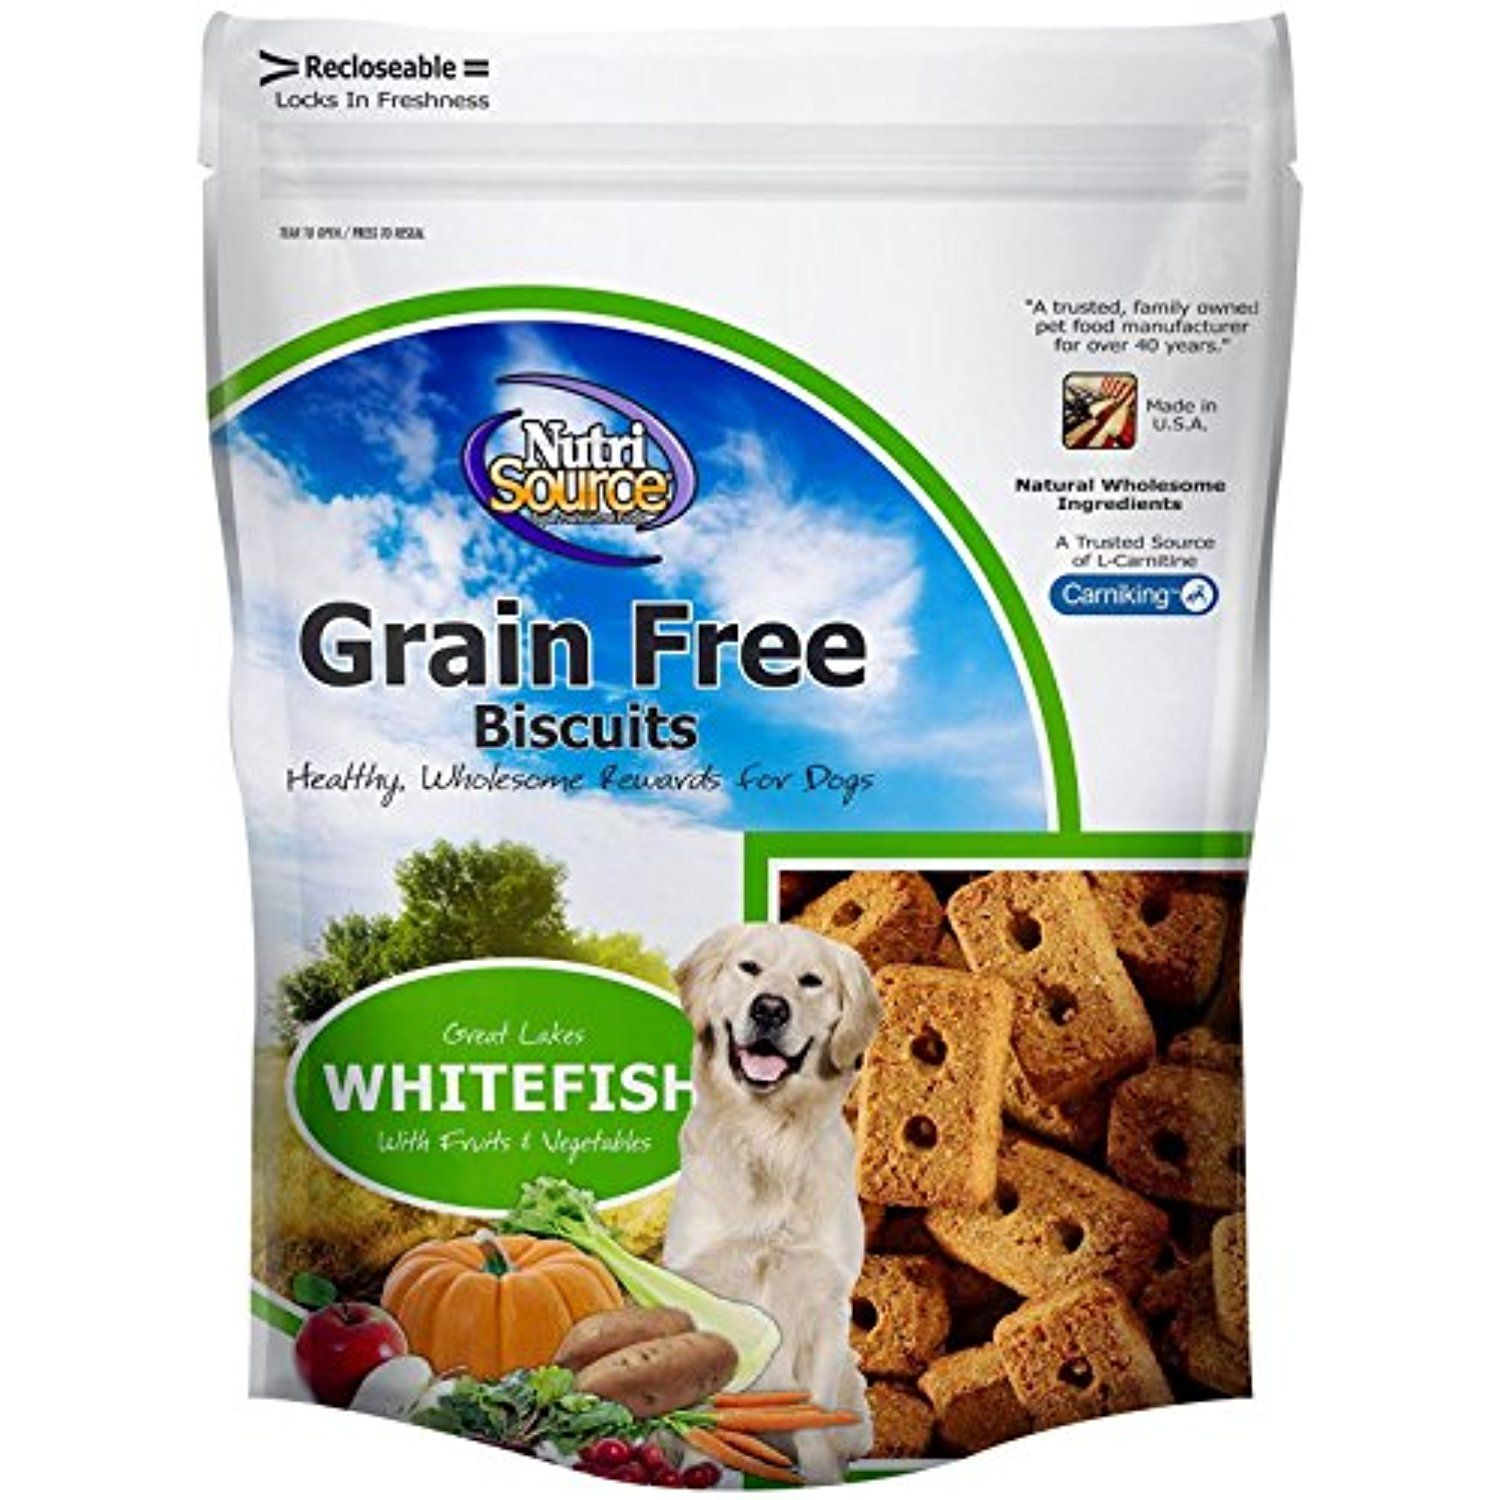 Nutri Source Grain Free Fish Biscuit 14 oz You could